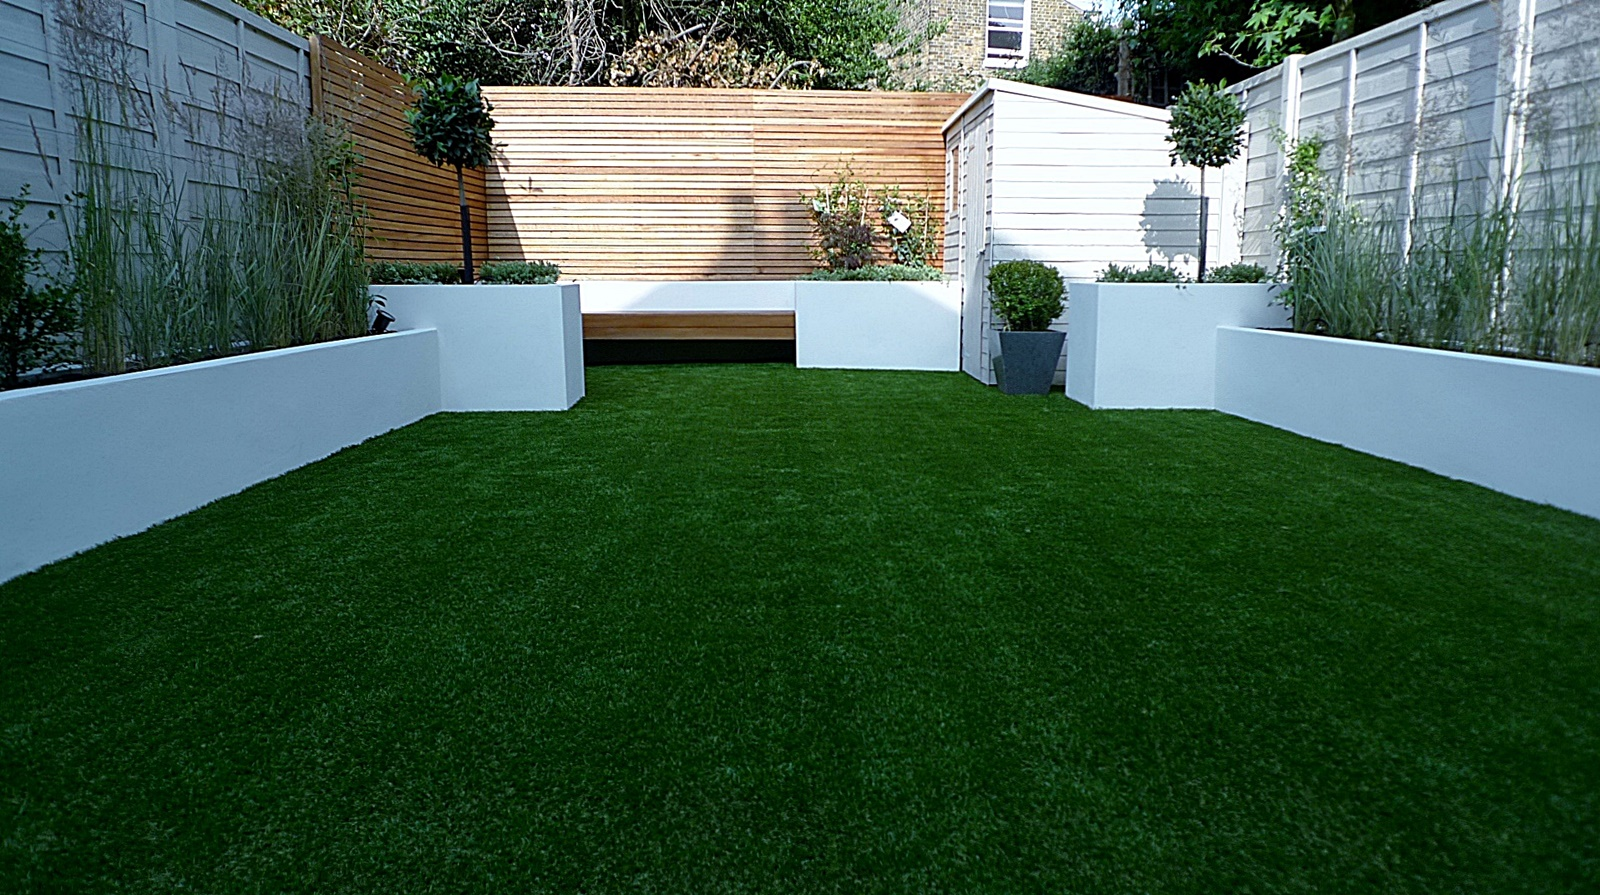 Easi grass formal white wooden wall render walls Earsfields Battersea Wandsworth